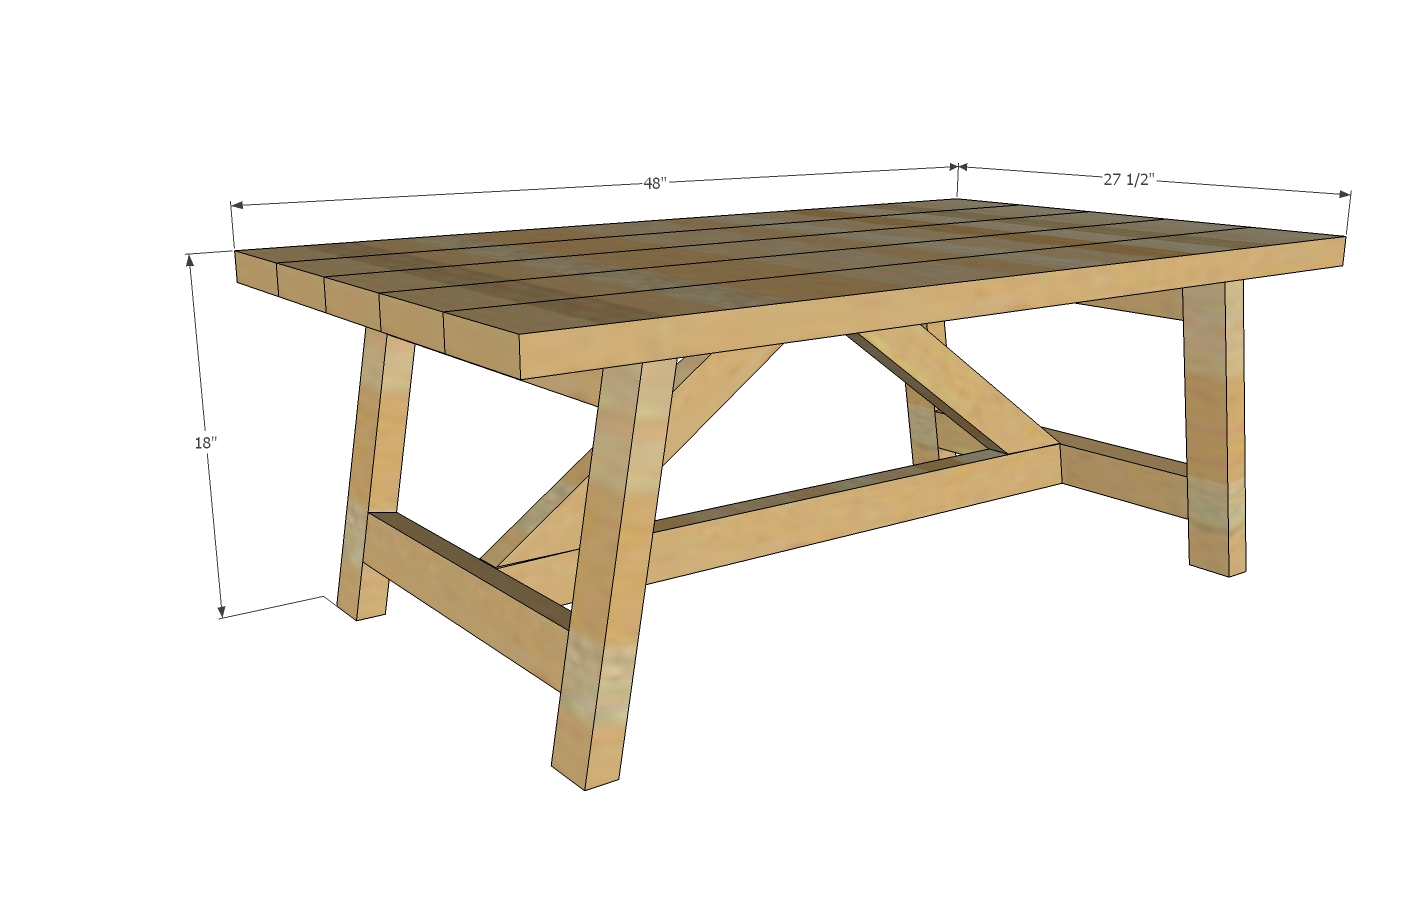 Truss coffee table woodworking plans woodshop plans for Working table design ideas